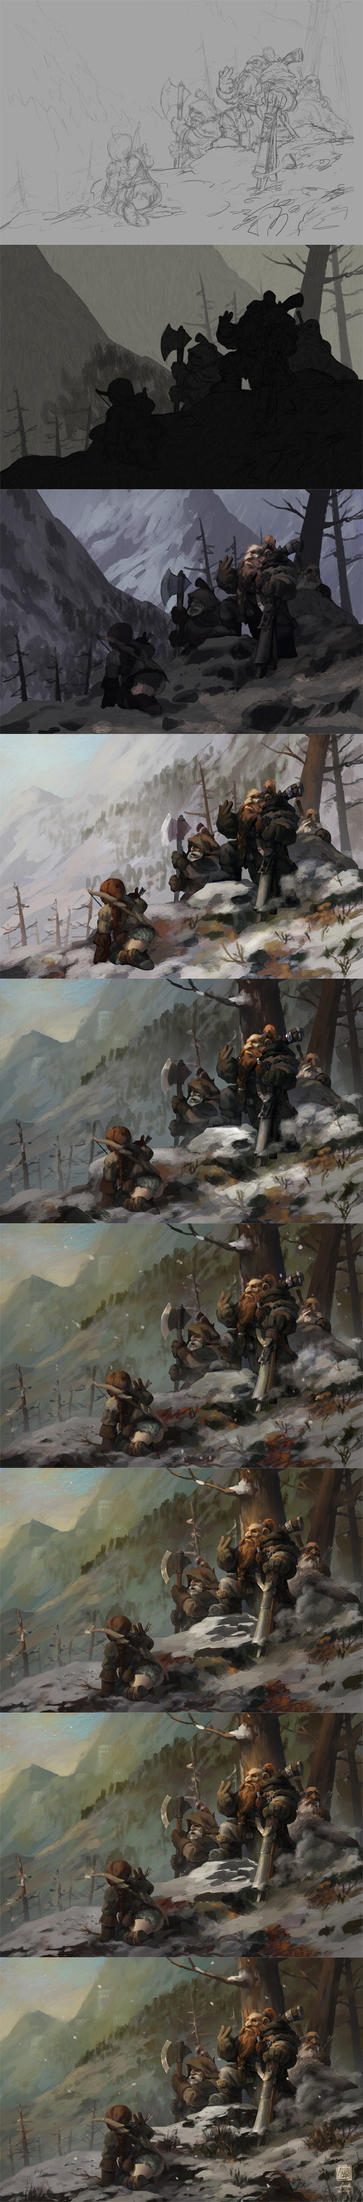 The painting process of Game of the Hunters by 6kart